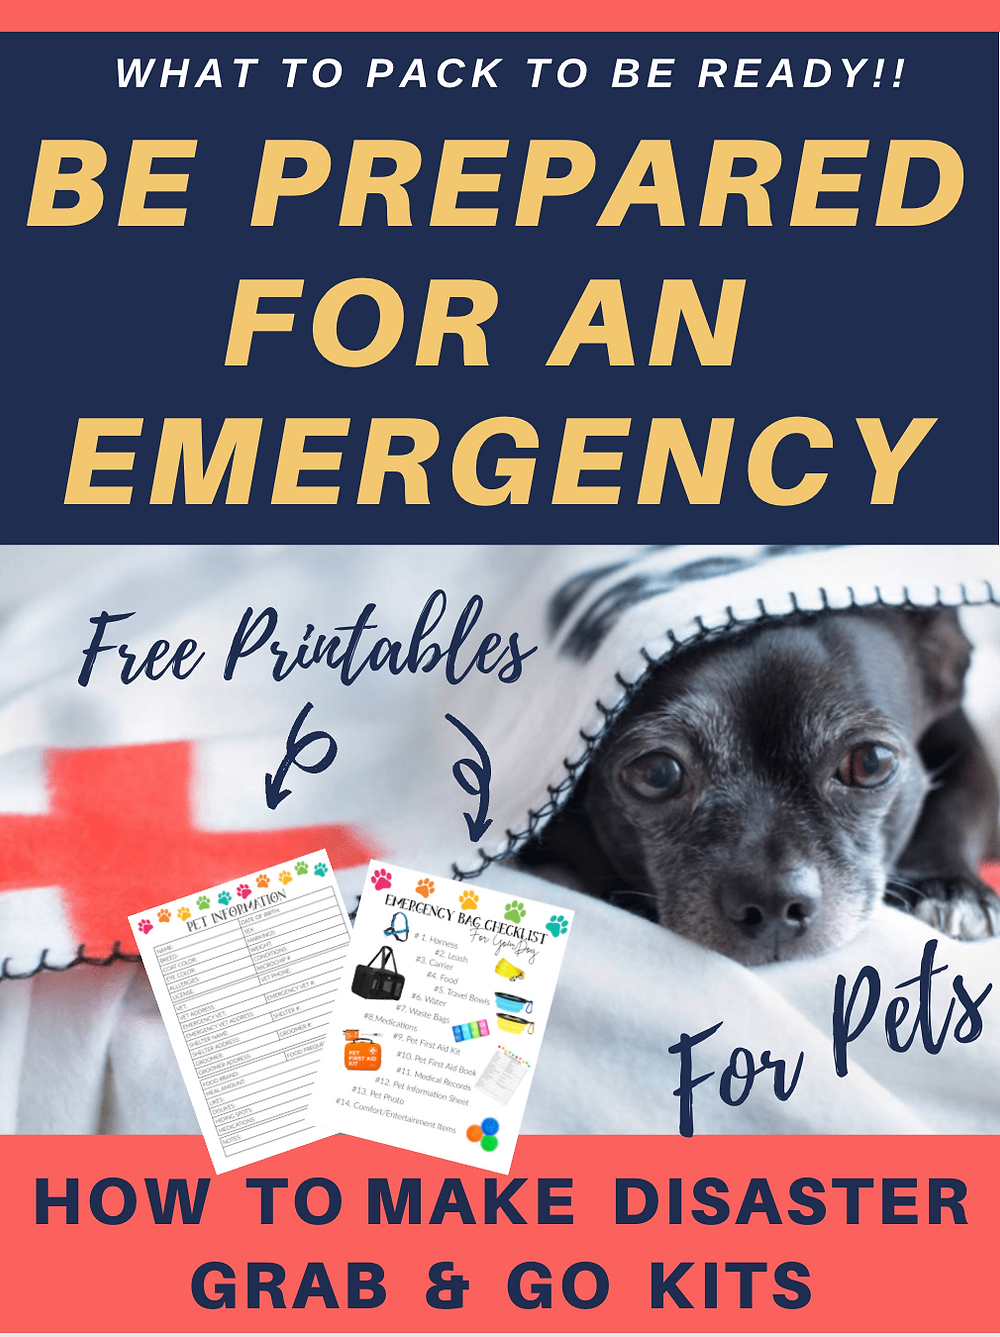 Dog in red cross blanket and emergency kit for pets